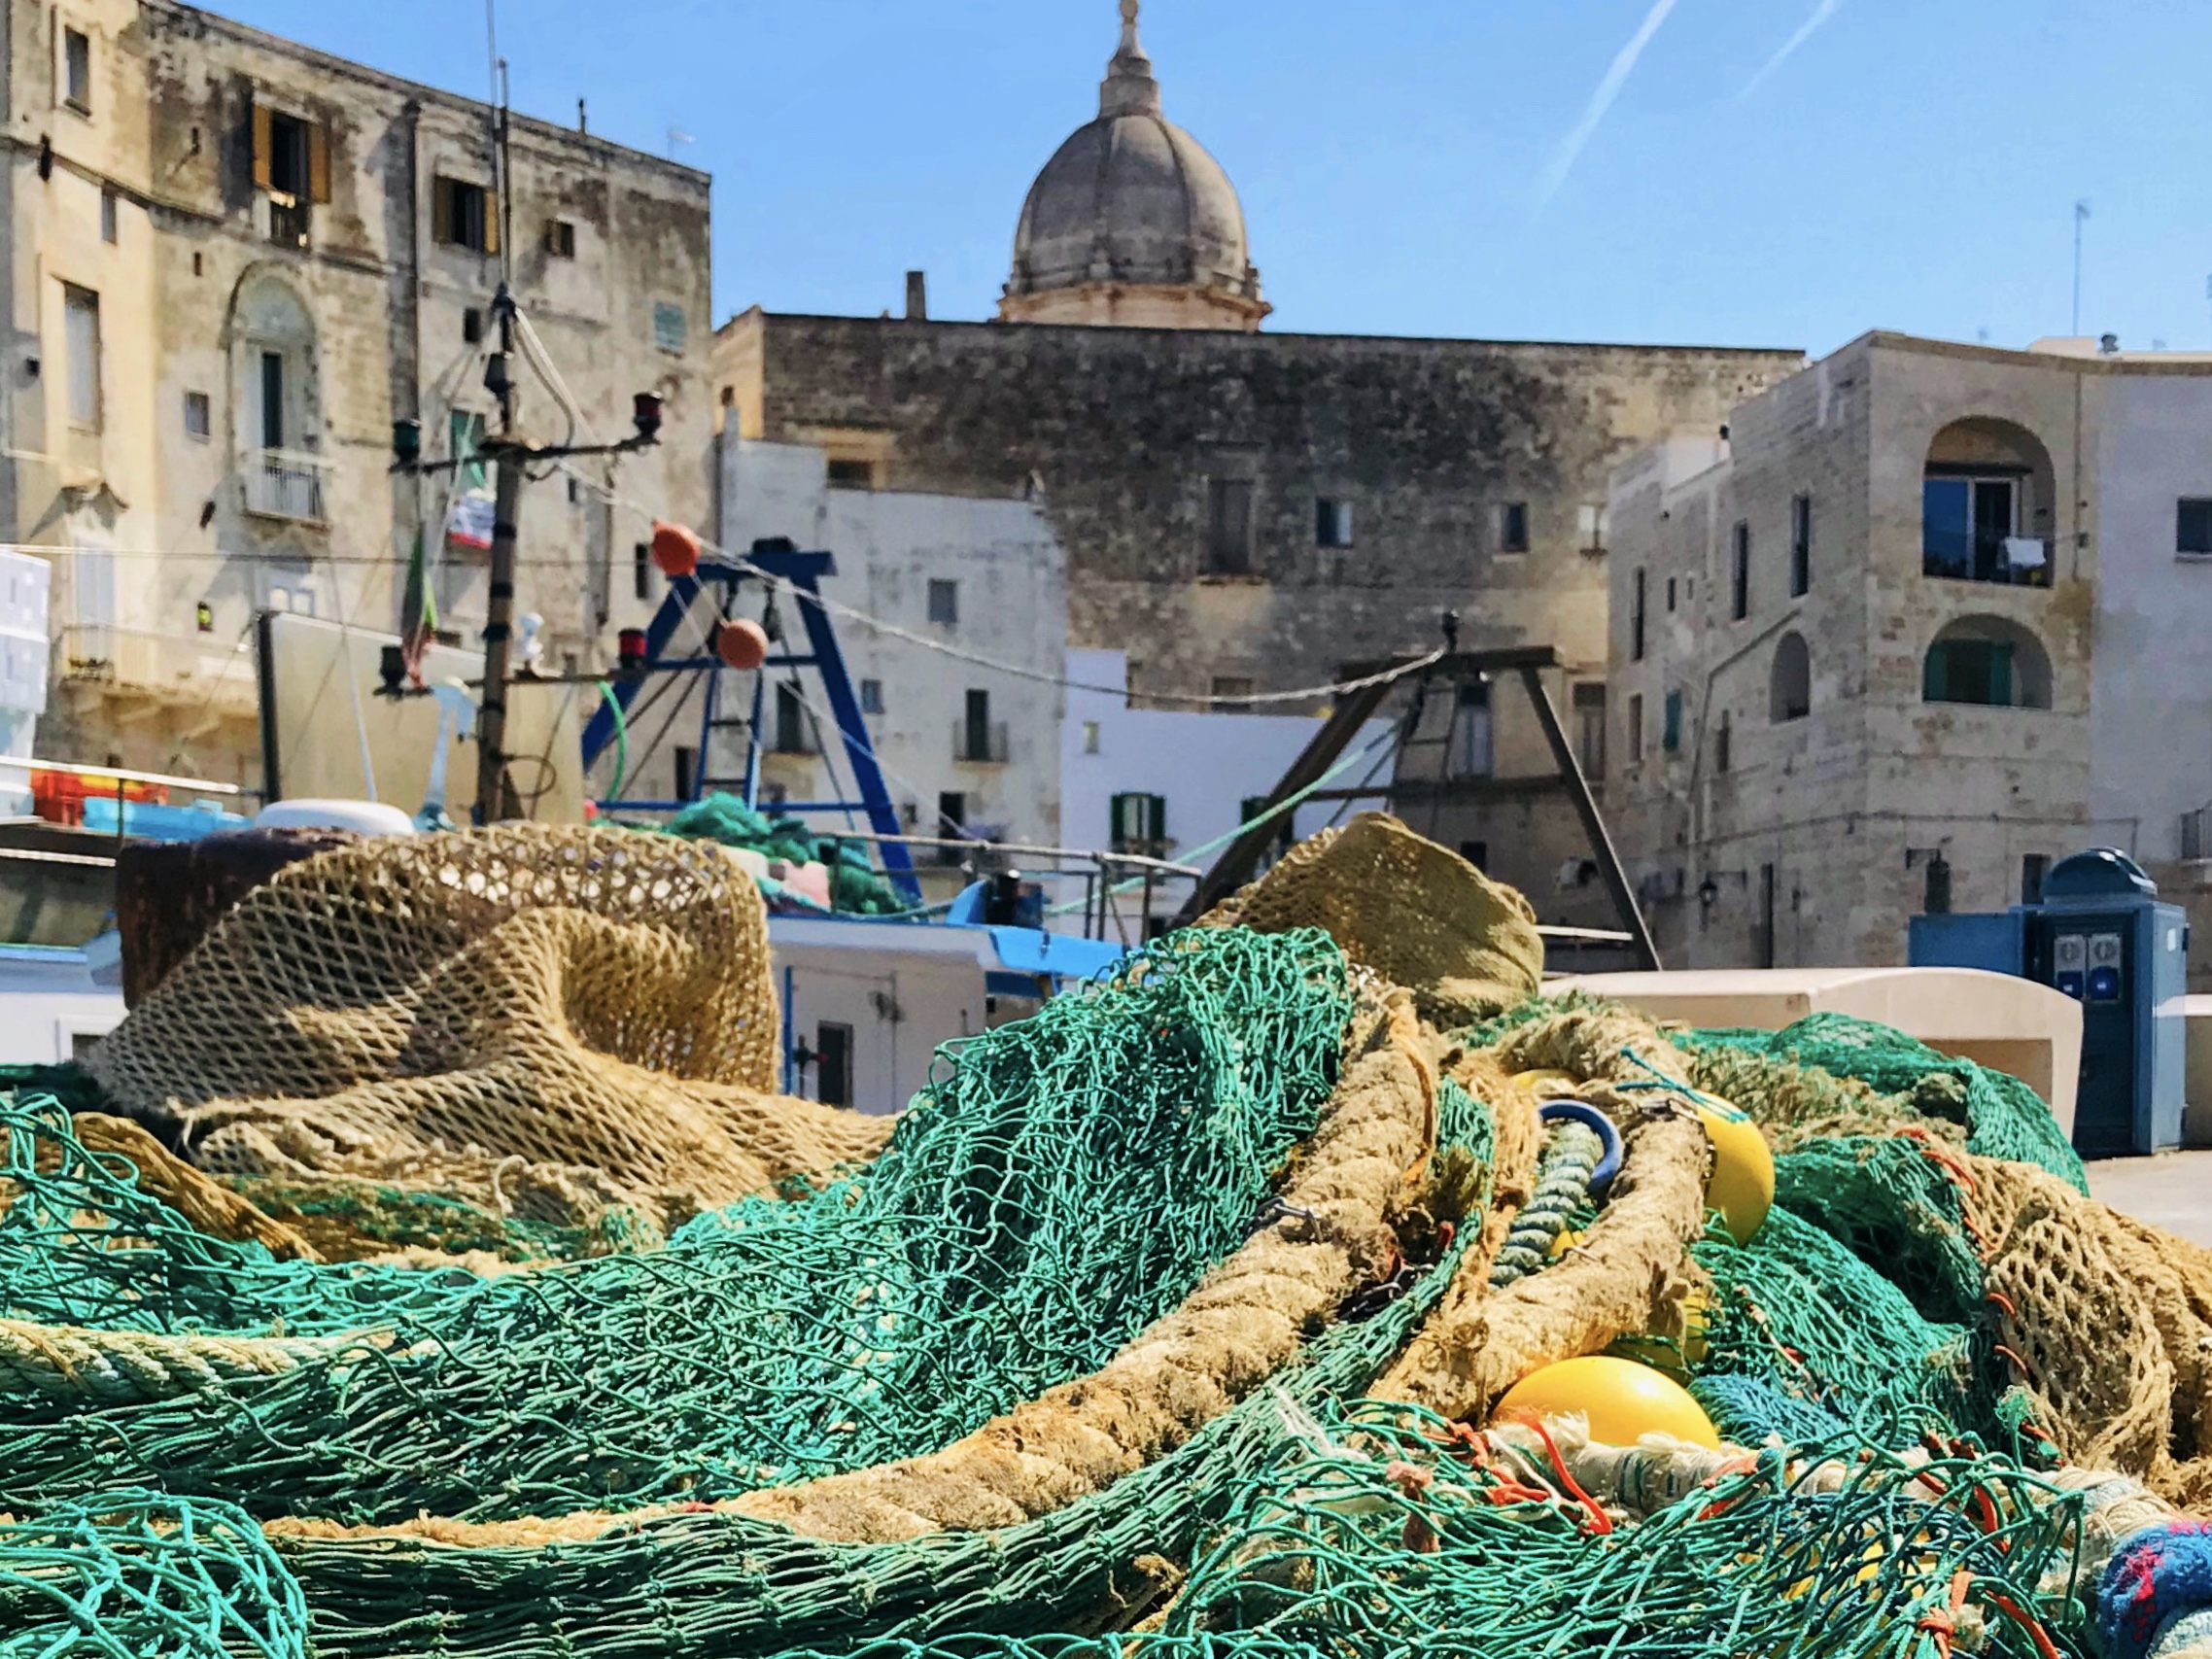 Fishing nets left to dry at the old port in Monopoli, Puglia.